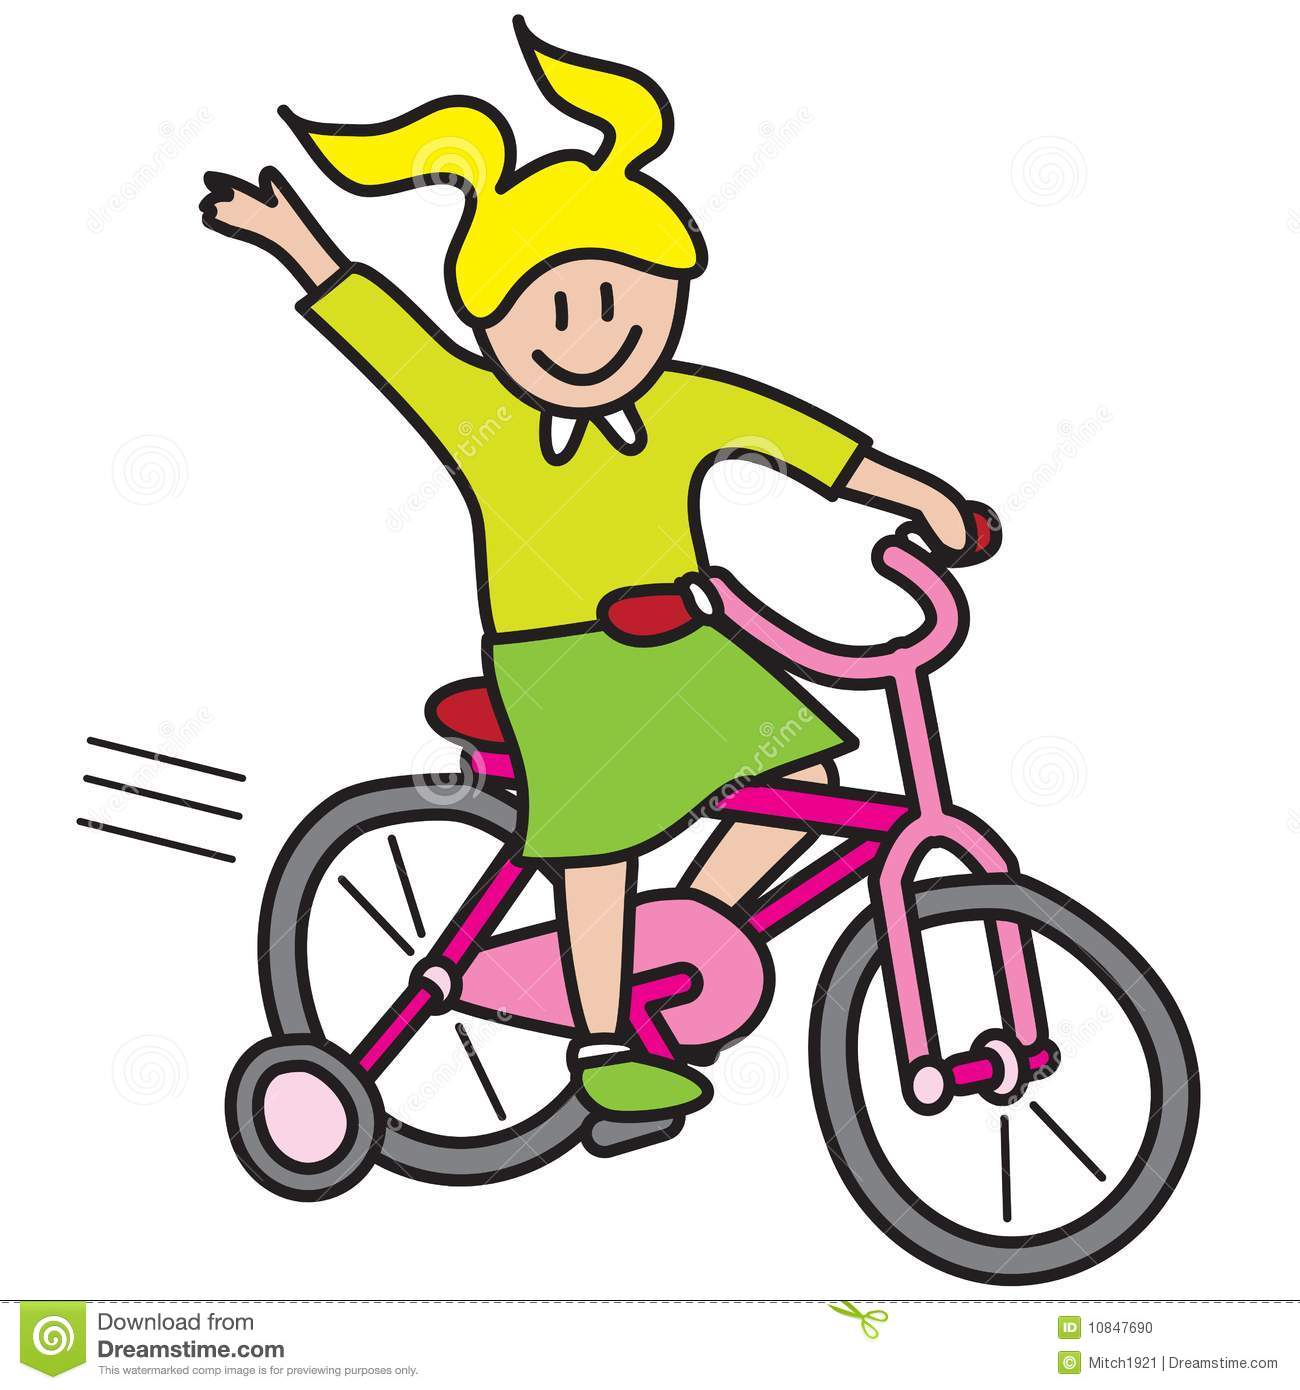 Pushbike clipart circus Bike a Kid bike riding